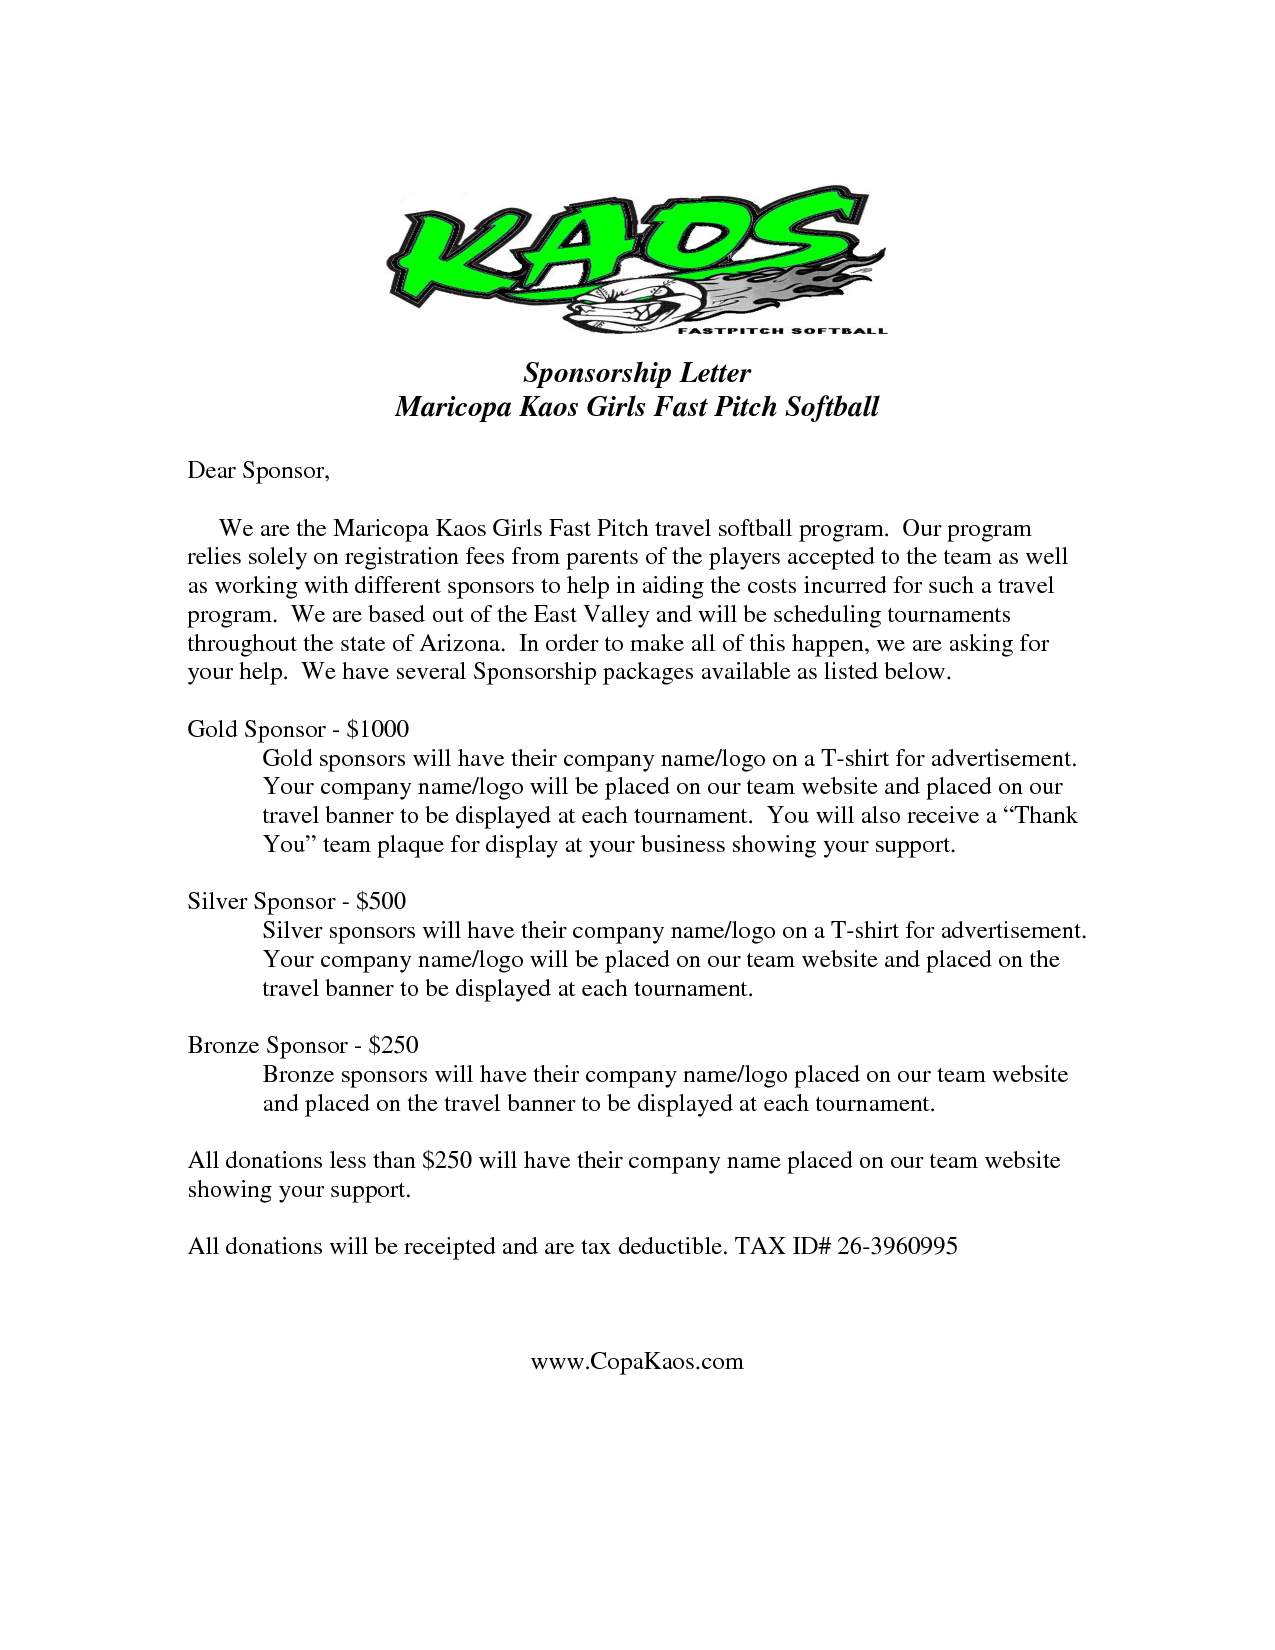 cheerleading sponsorship letter template example-Image result for sample sponsor request letter donation 19-k